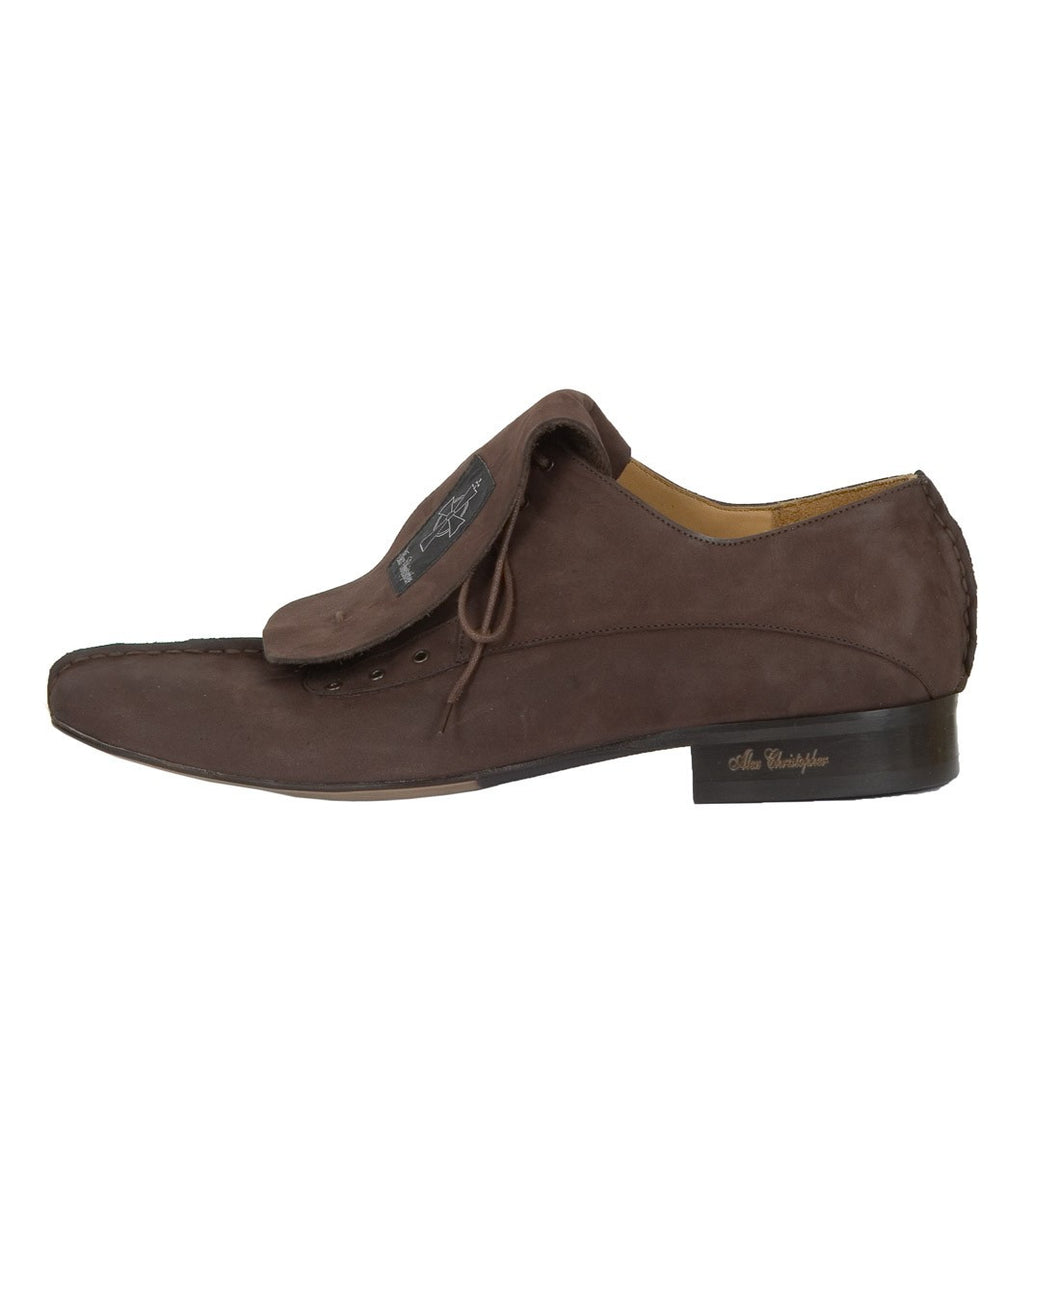 Pastie Shoe - Brown